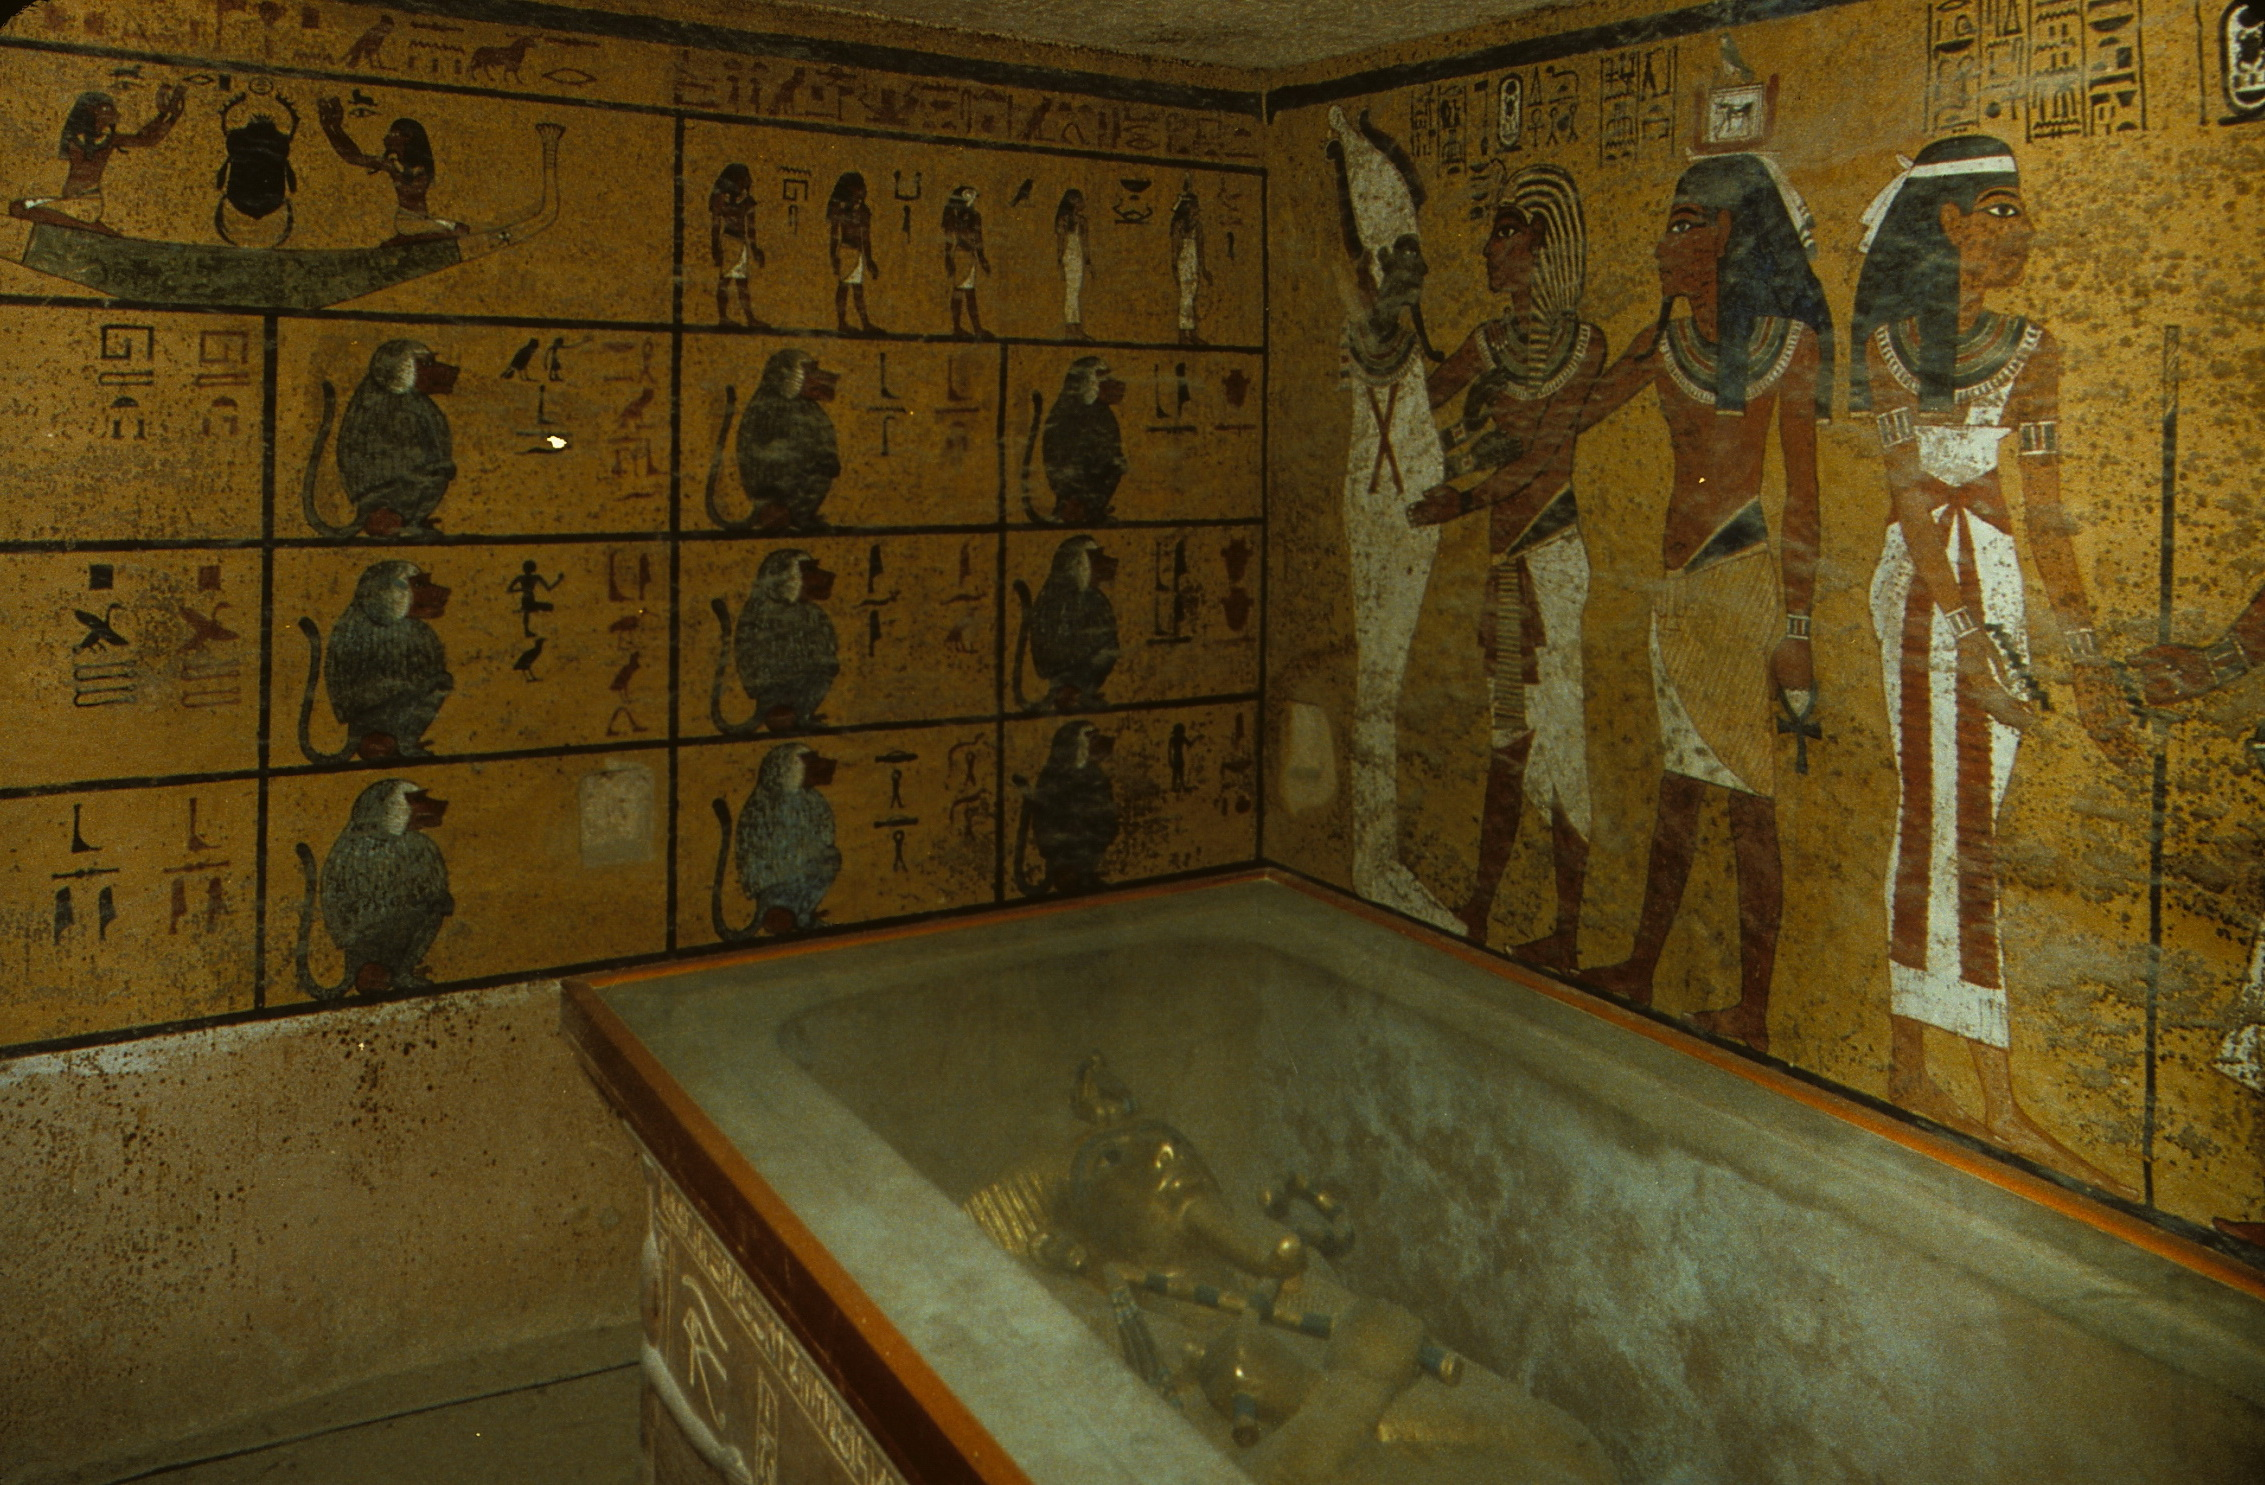 Inside the tomb of the boy king, Tutankhamen